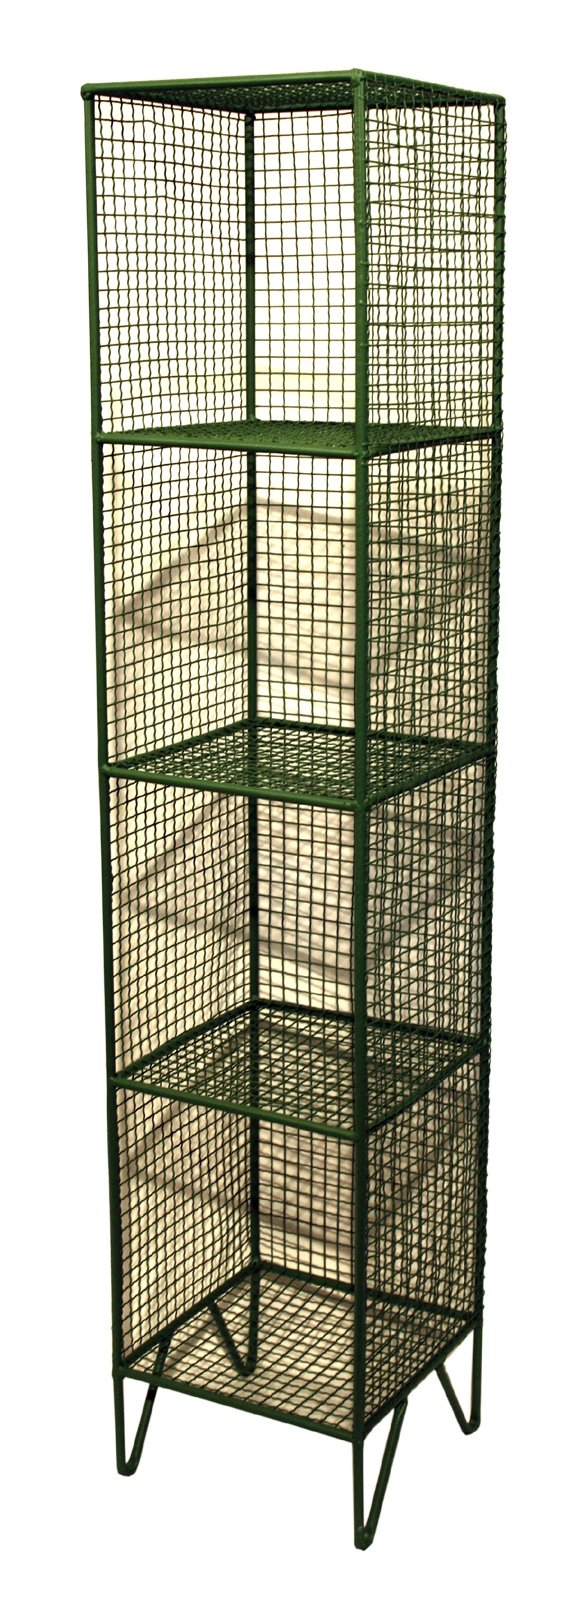 4 Tier Square Shelf Unit Green